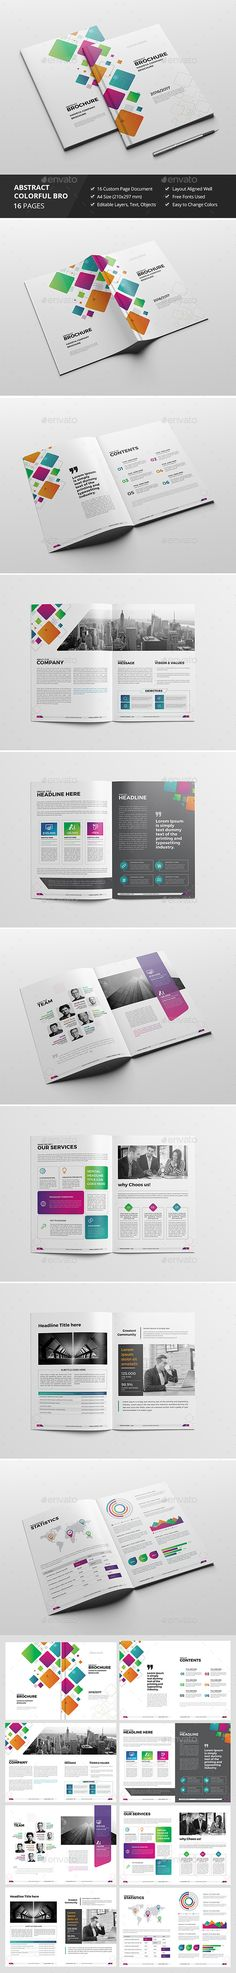 Haweya Colorful Brochure Template InDesign INDD